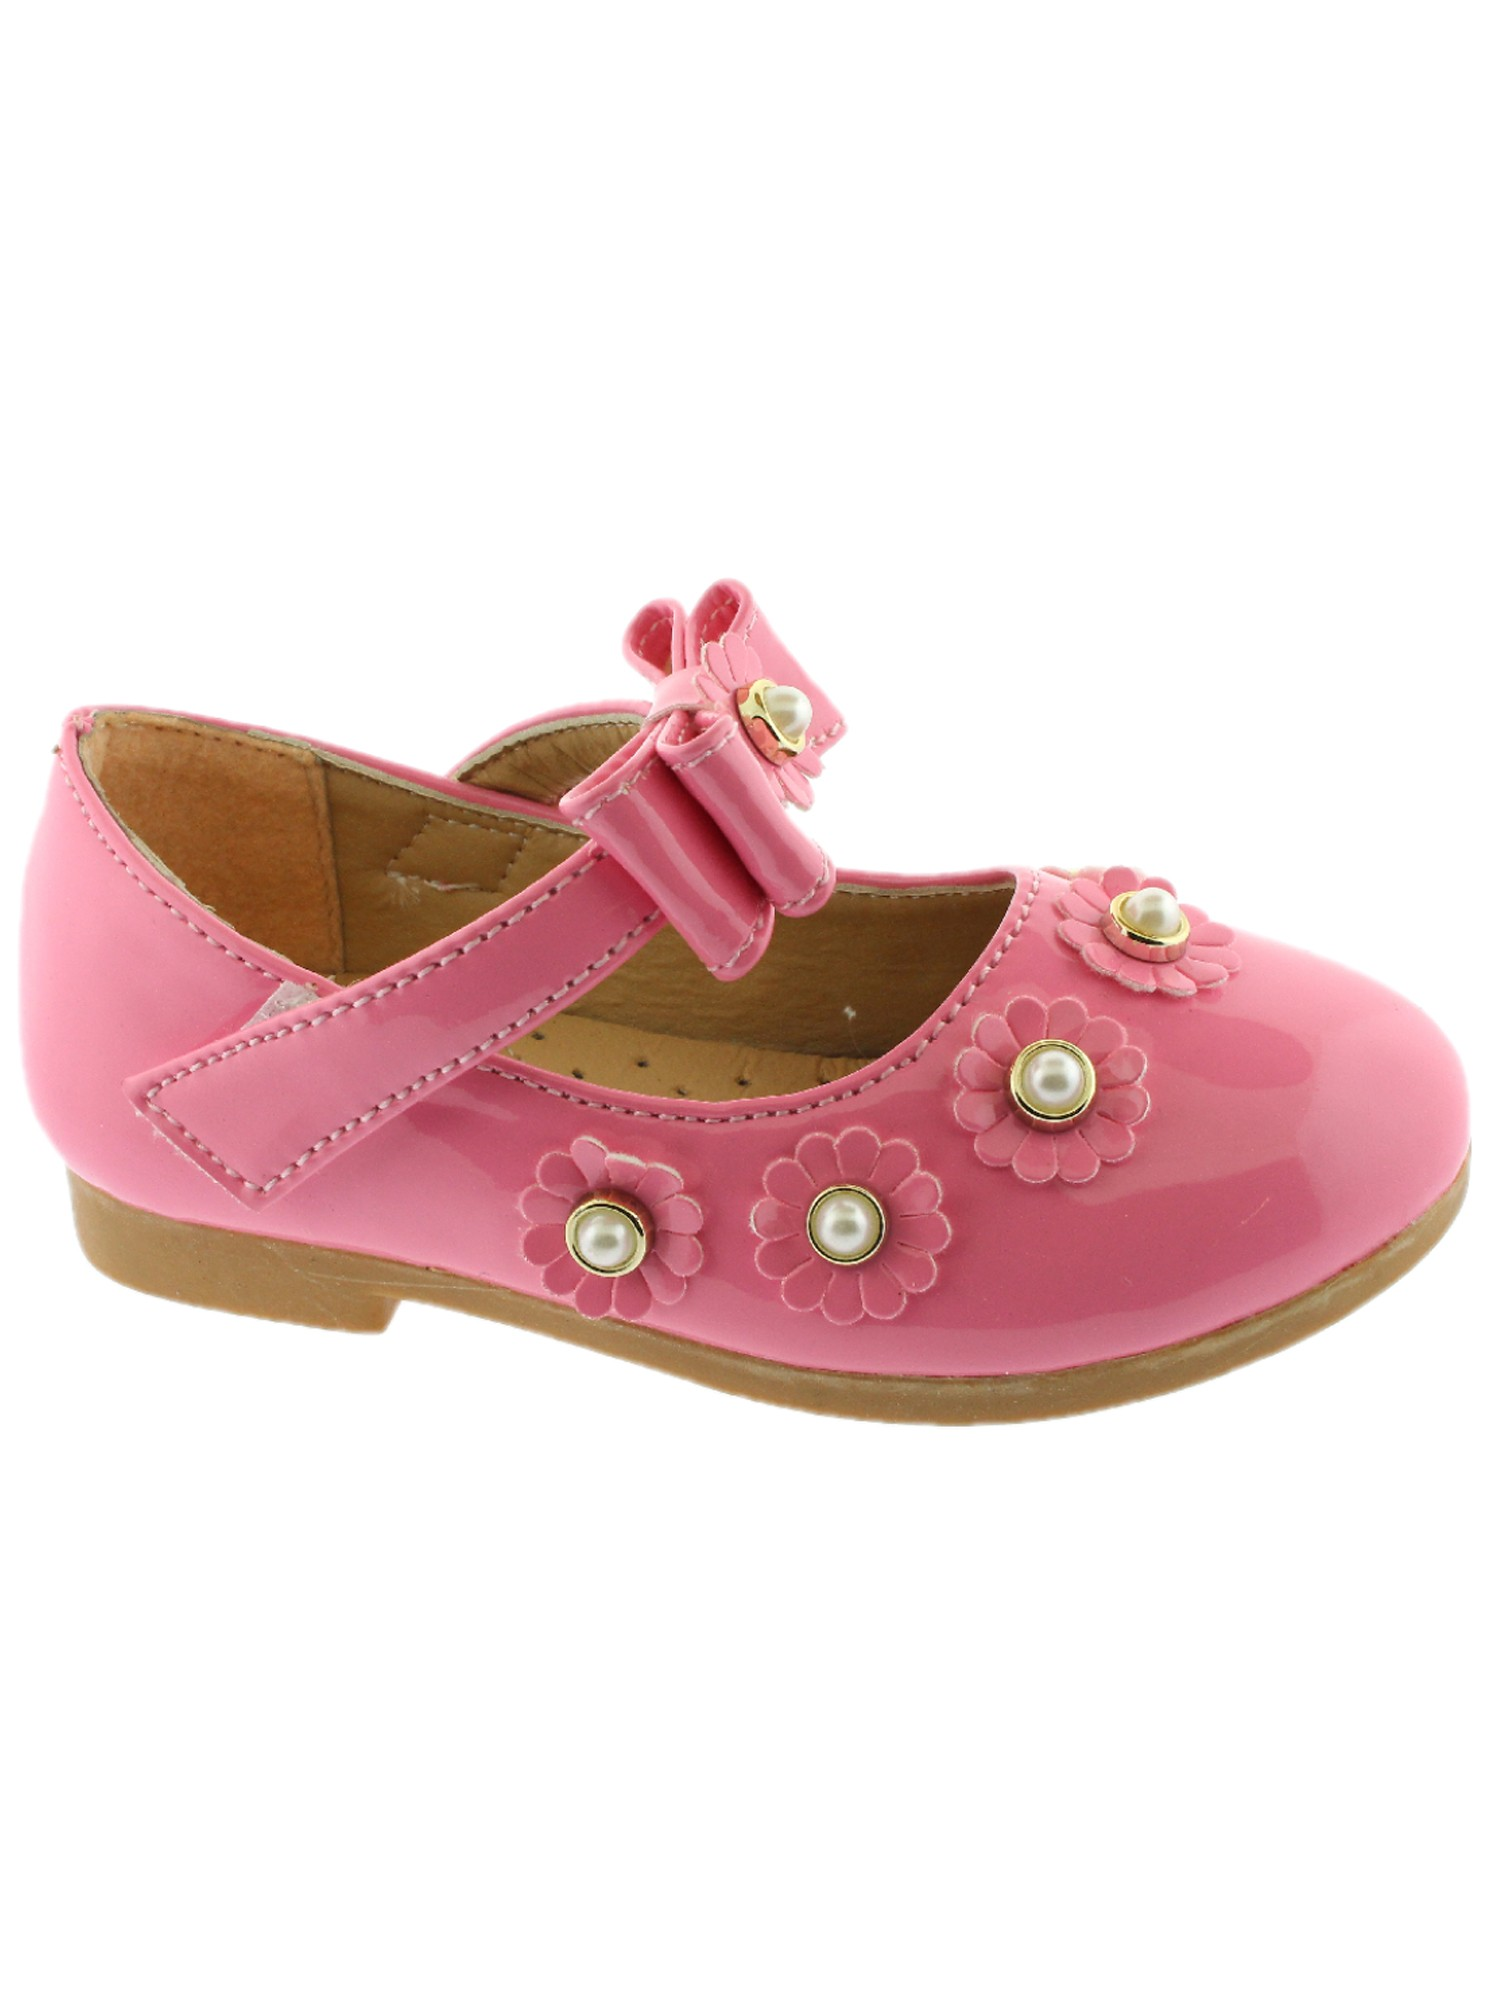 GIRLS KIDS CHILDRENS FLAT MARY JANE TOUCH STRAP FLOWER DRESS SCHOOL SHOES SIZE